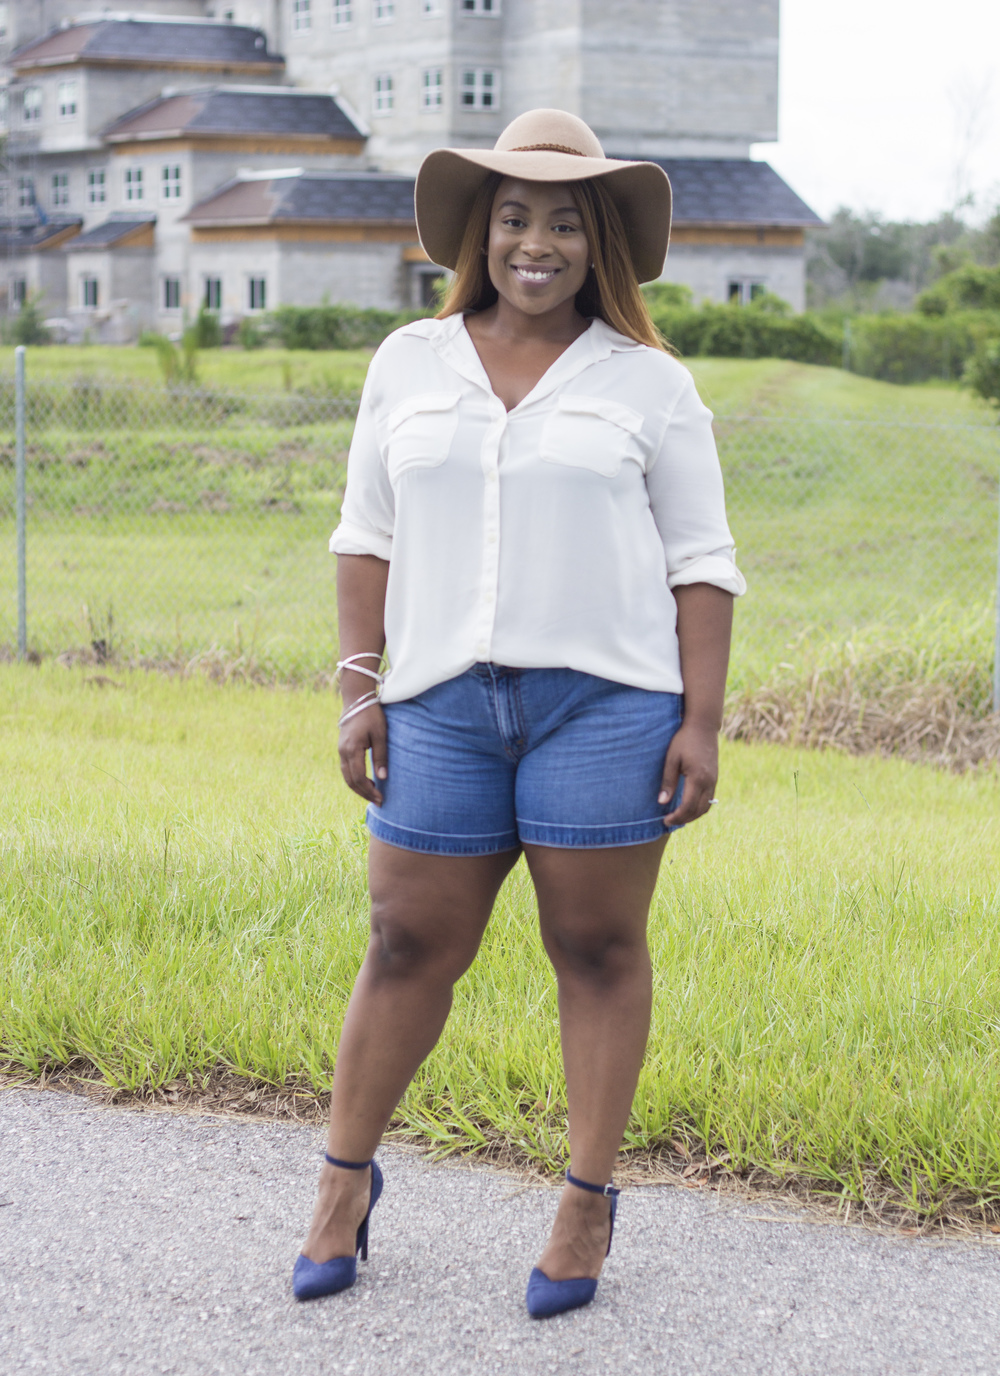 Hat: Aldo Shoes Blouse: Thrifted (Ann Taylor Loft) Jeans Shorts: Thrifted Pumps: Forever21